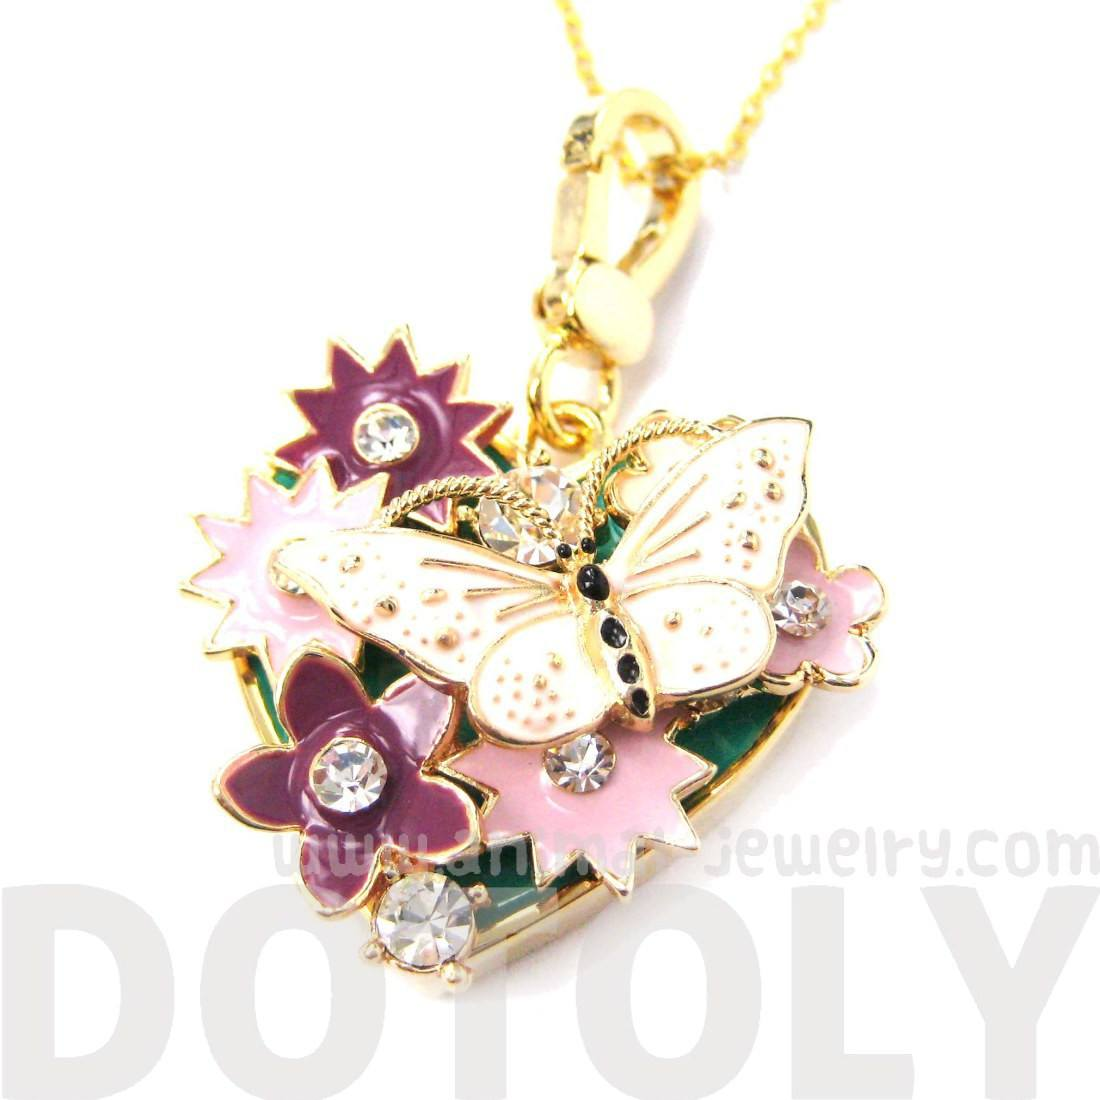 Heart Shaped Floral and Butterfly Pendant Necklace with Rhinestones